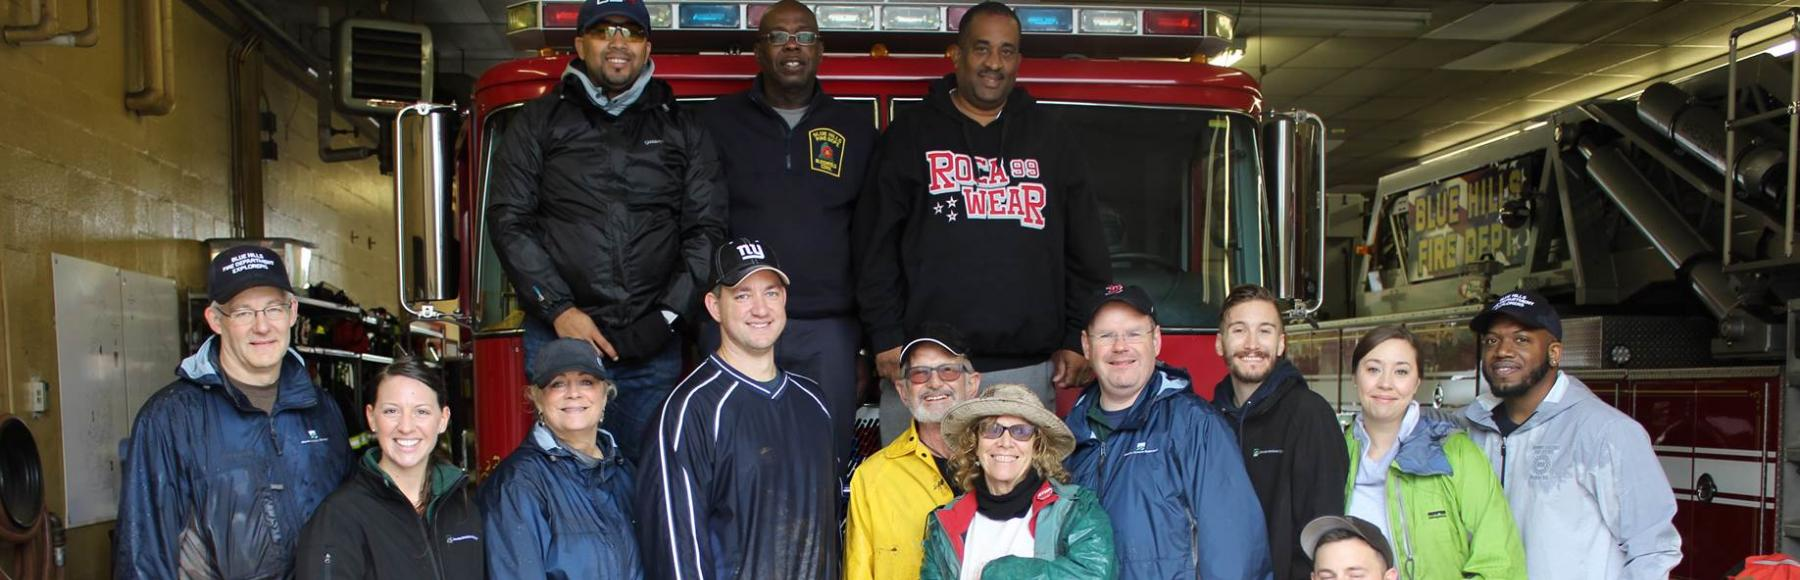 A group of Jacobs employees and Blue Hills Fire Department fire fighters in front of a fire truck after planting flowers.